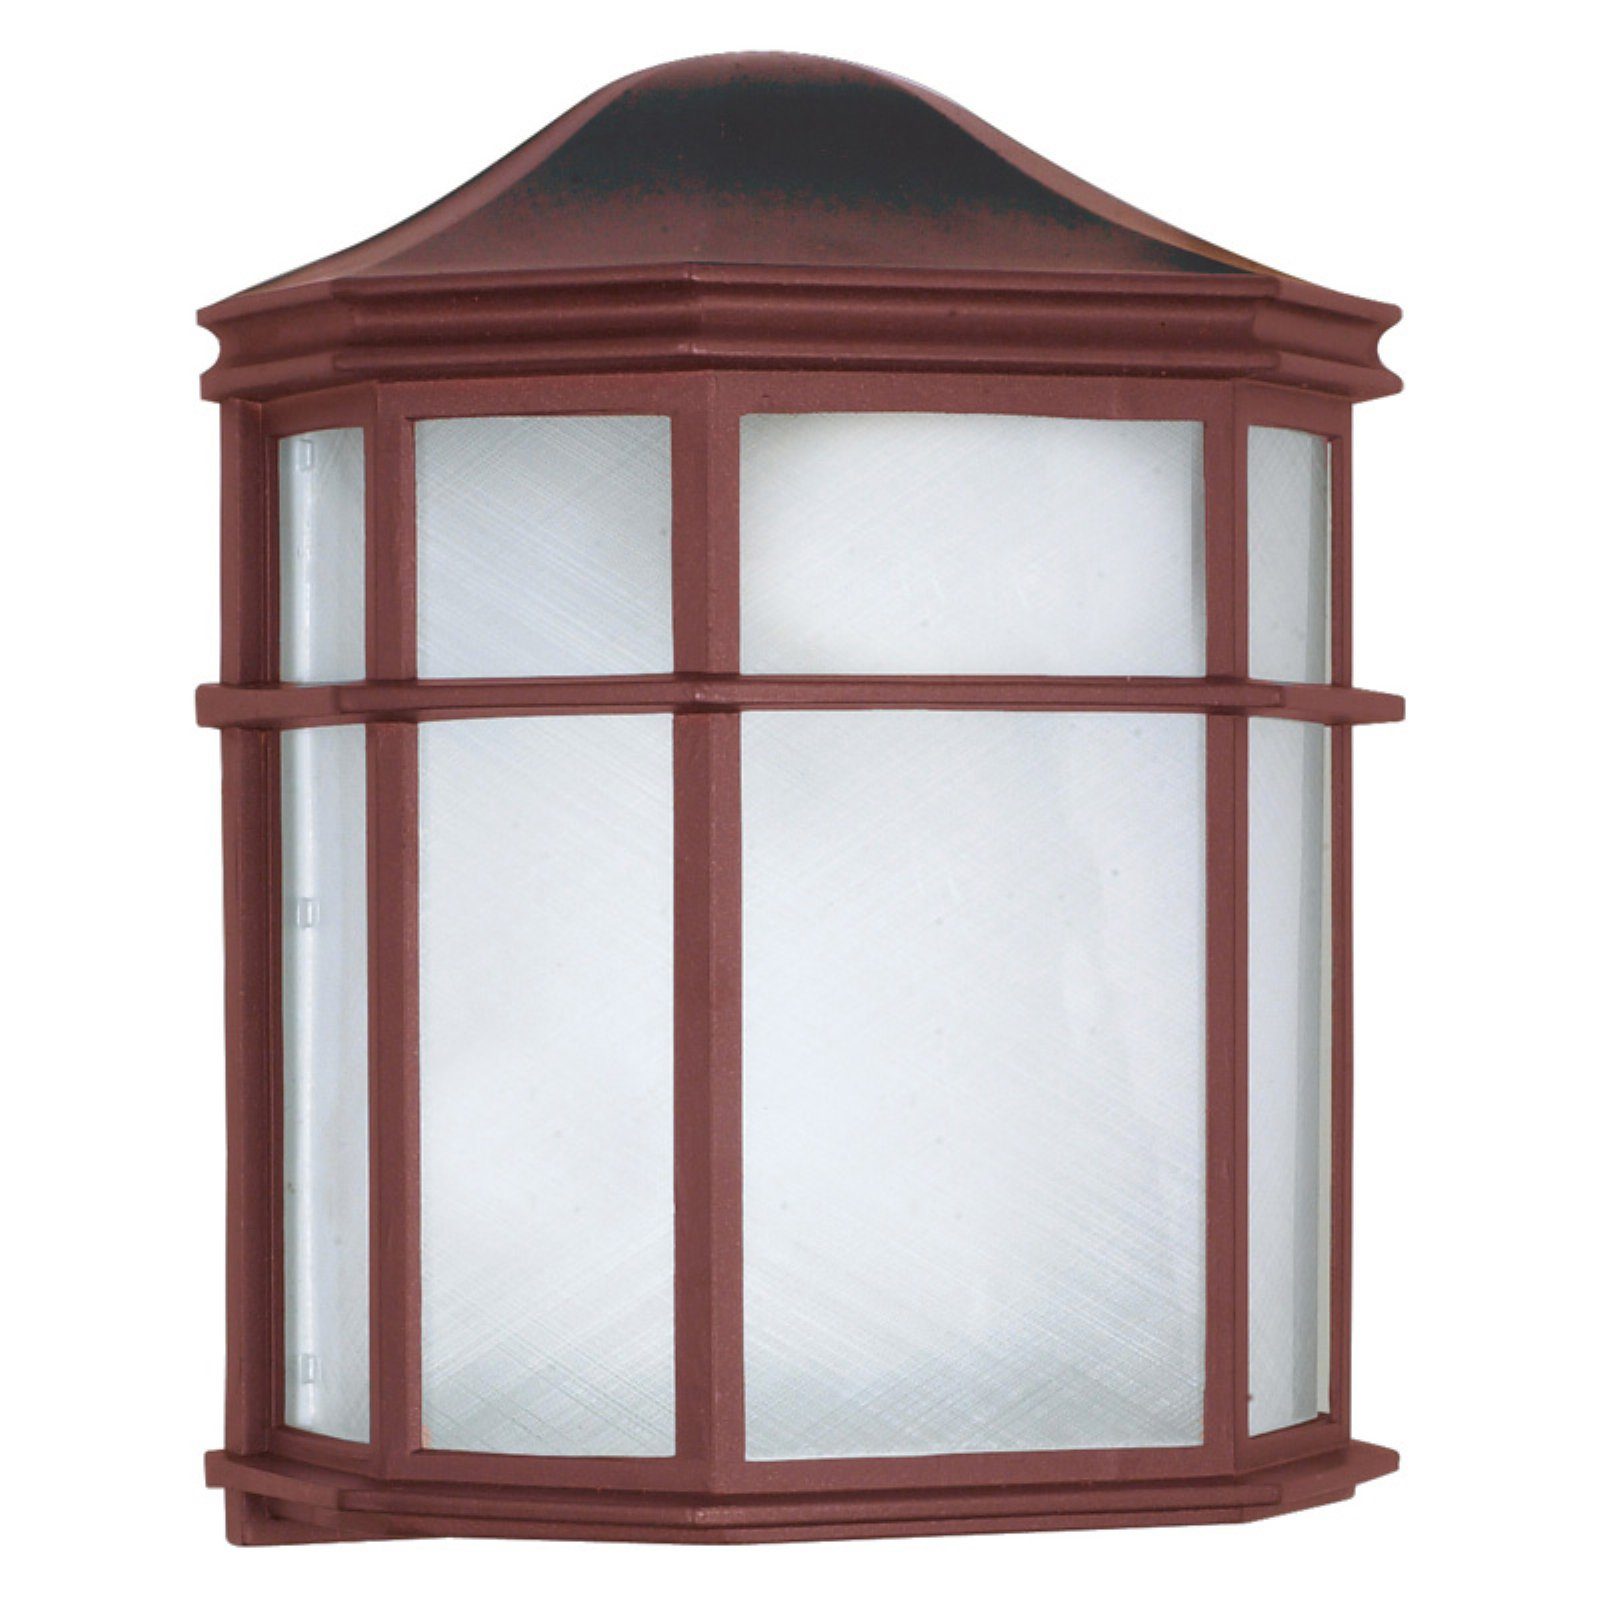 Nuvo Lighting 60/582 Single Light Ambient Lighting Outdoor Wall Sconce